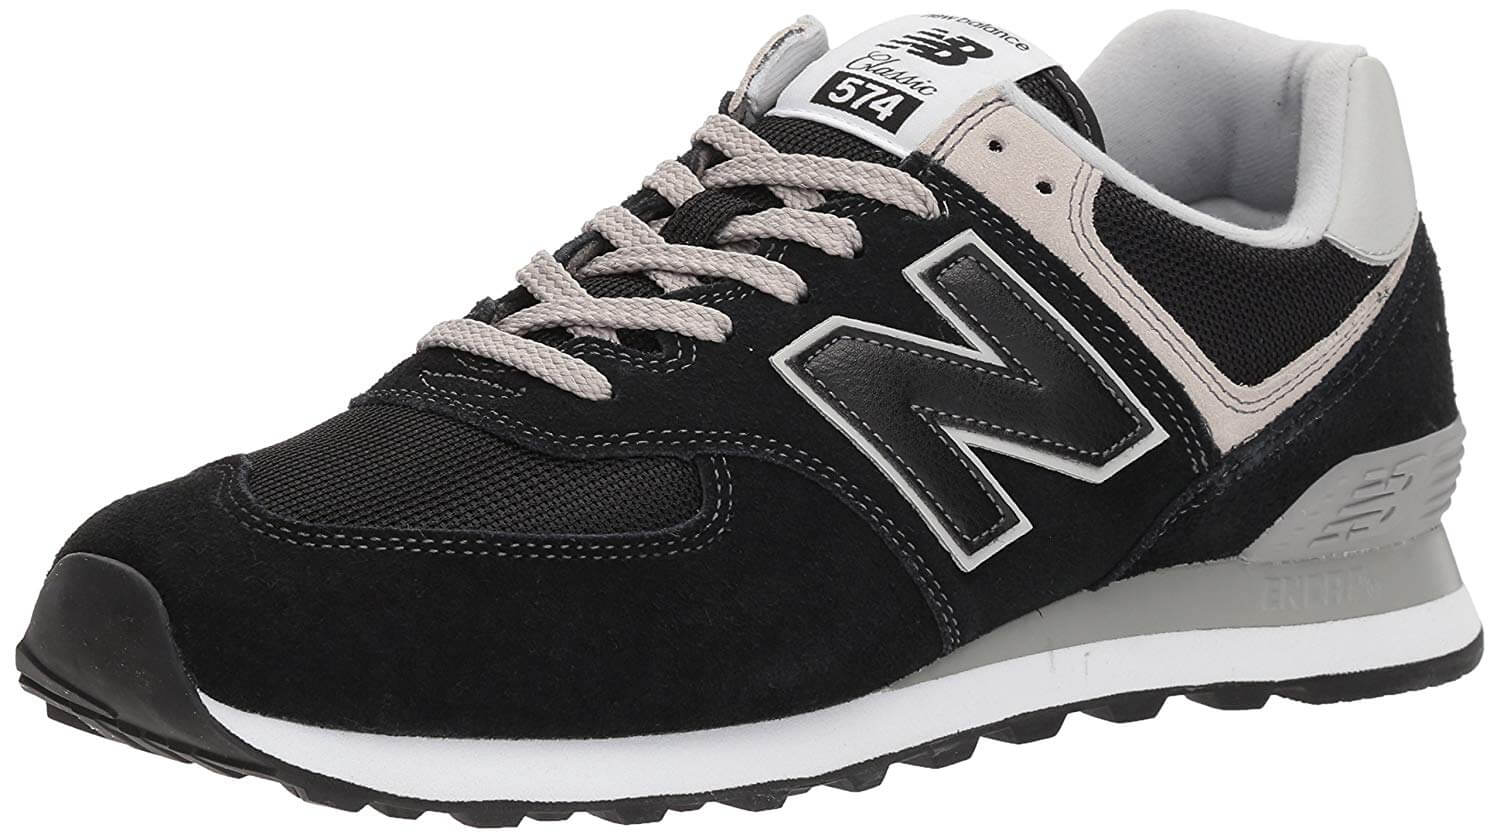 877dee8756376 New Balance 574 Reviewed - To Buy or Not in Aug 2019?